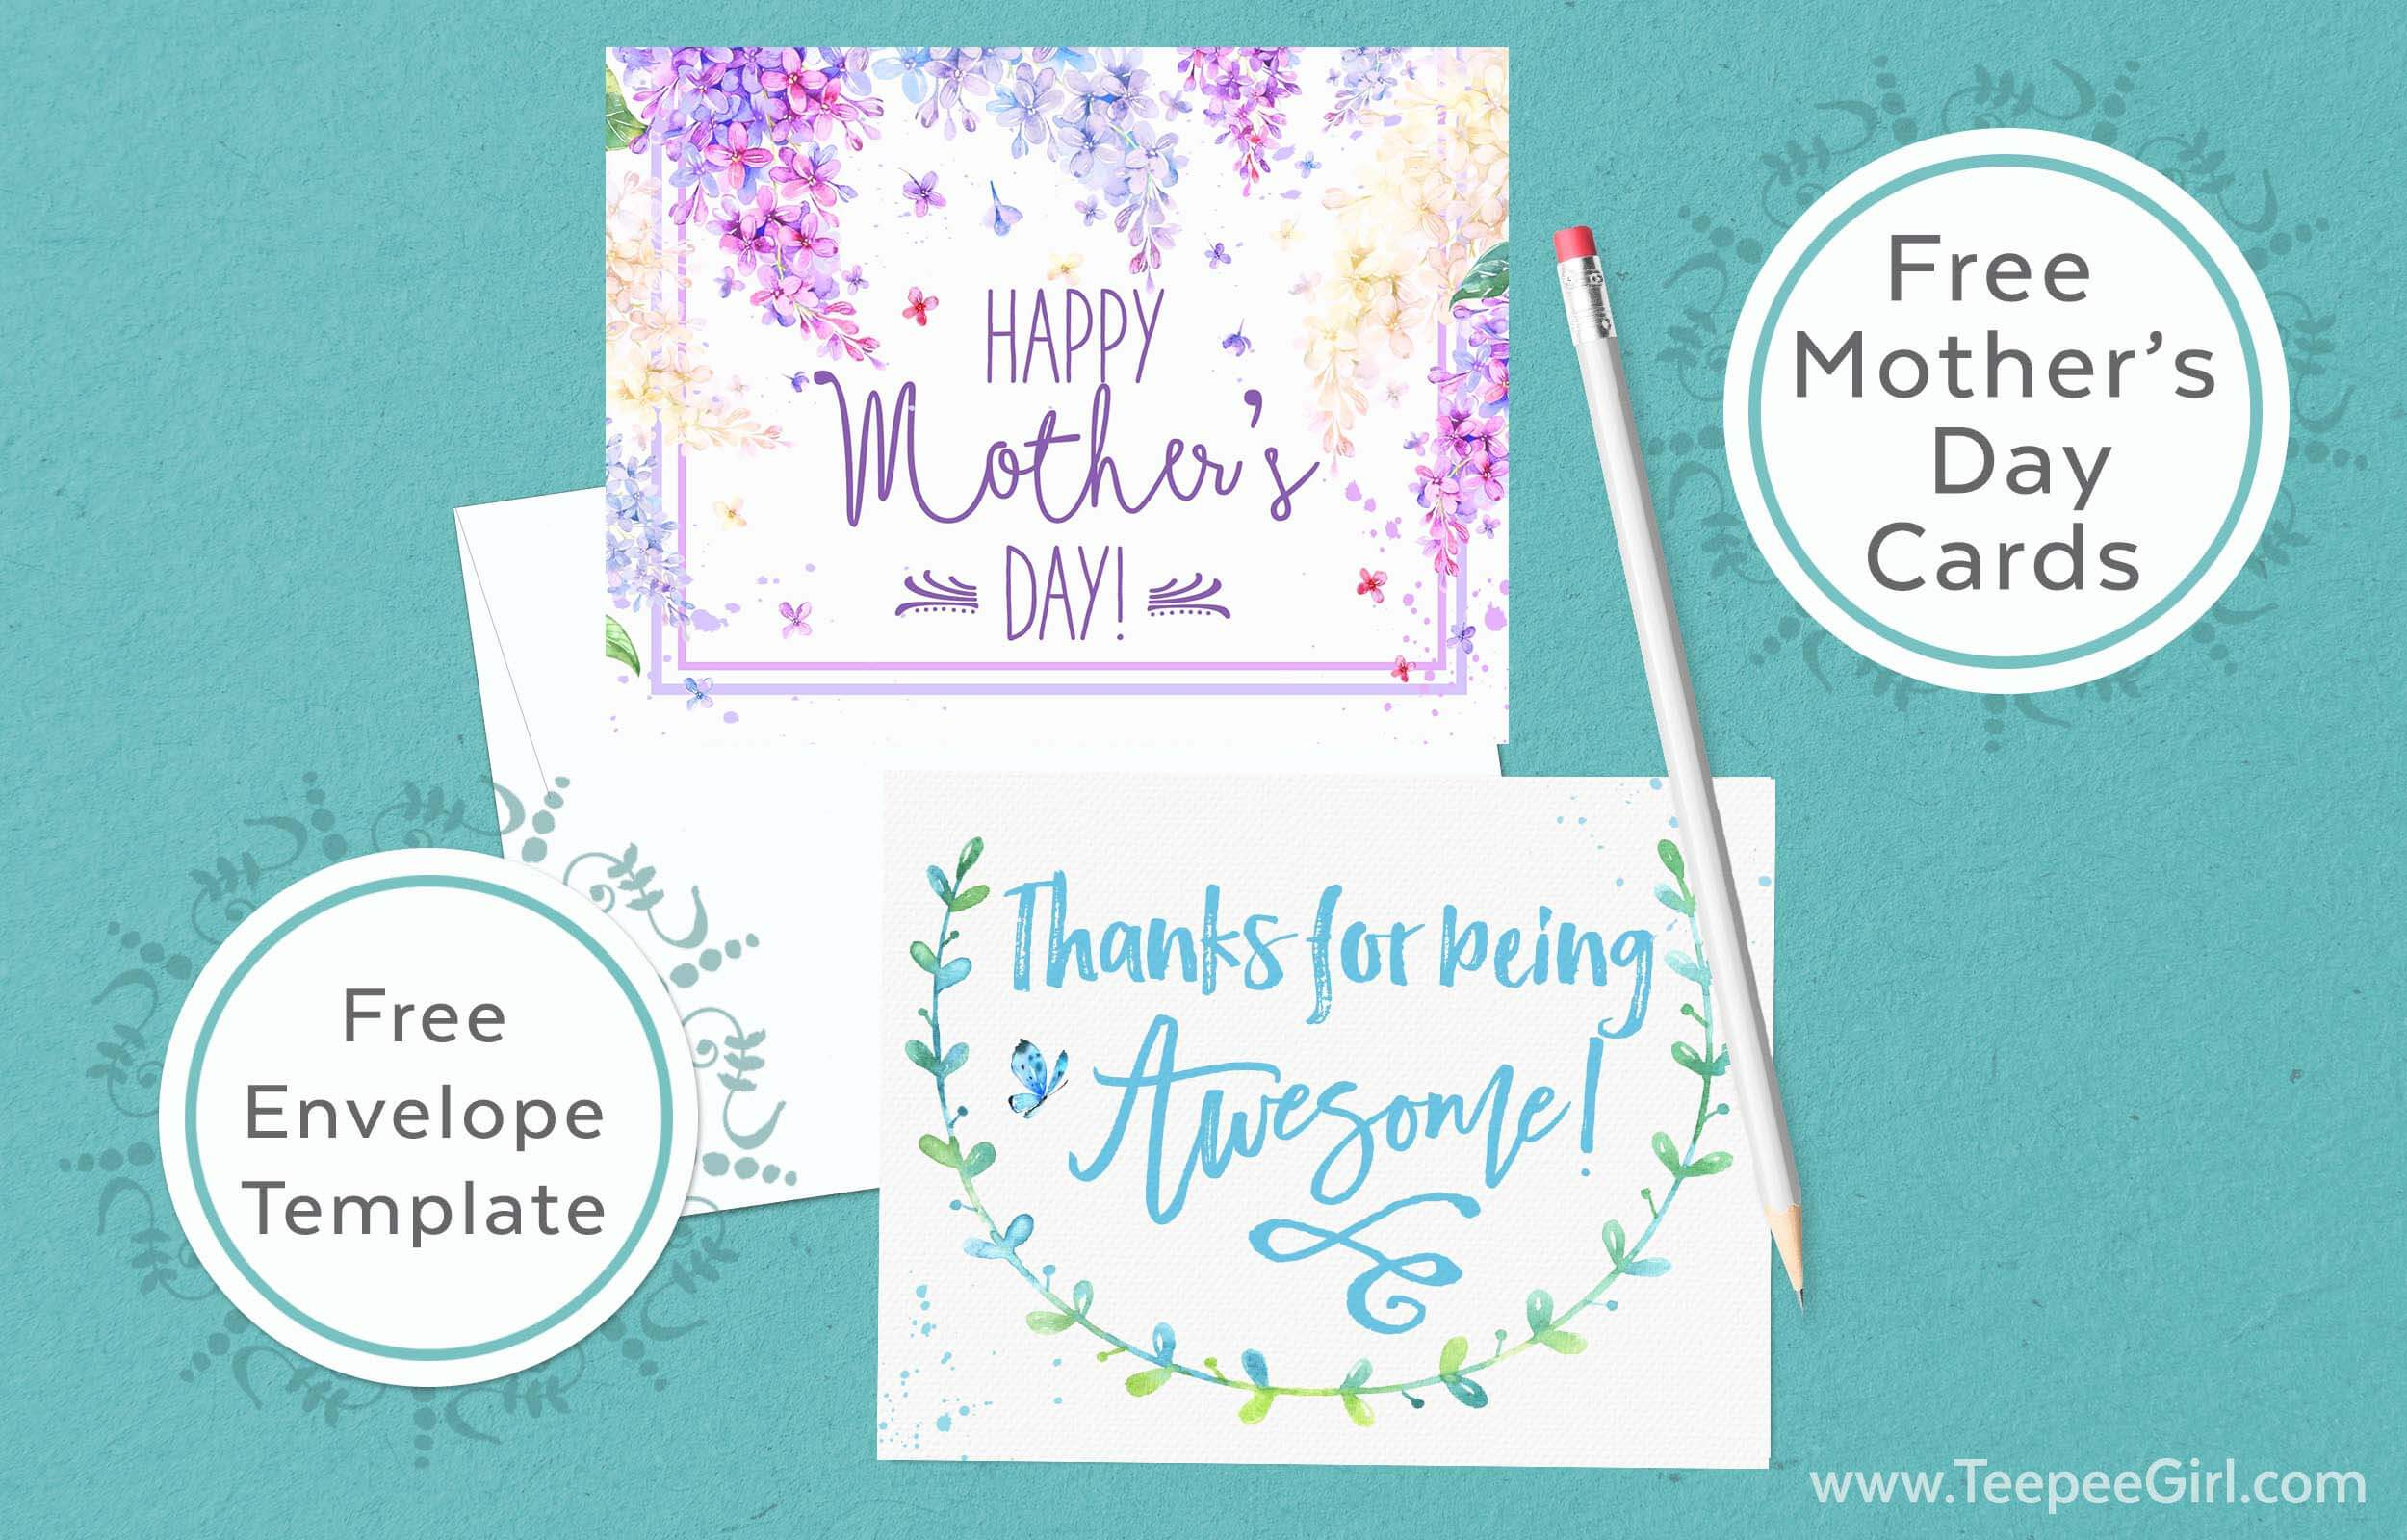 Free Mothers Day Cards Envelope Template Teepee Girl - Free mother's day card templates